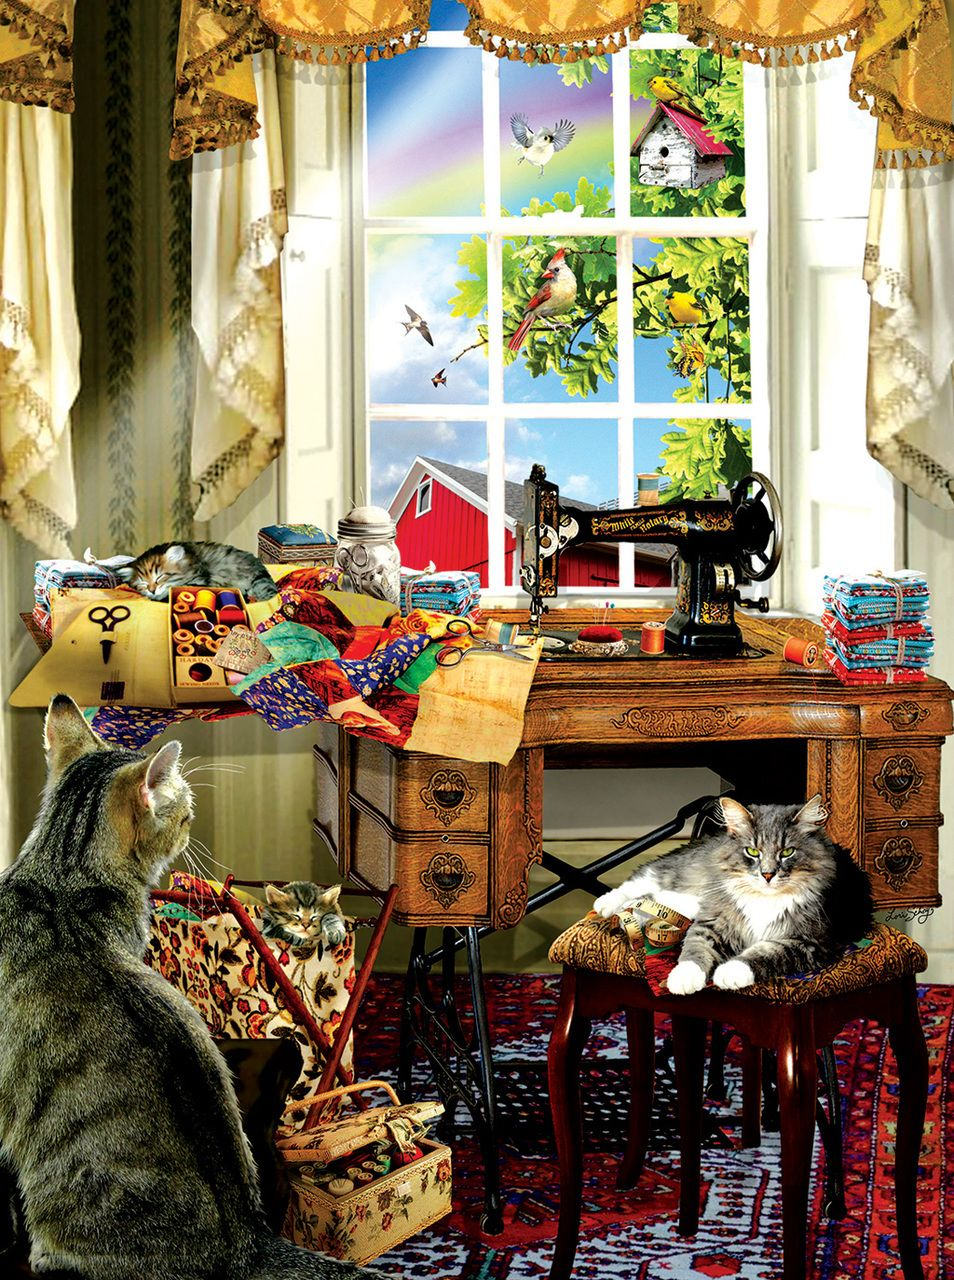 The Sewing Room - 1000pc Jigsaw Puzzle by Sunsout in 2019